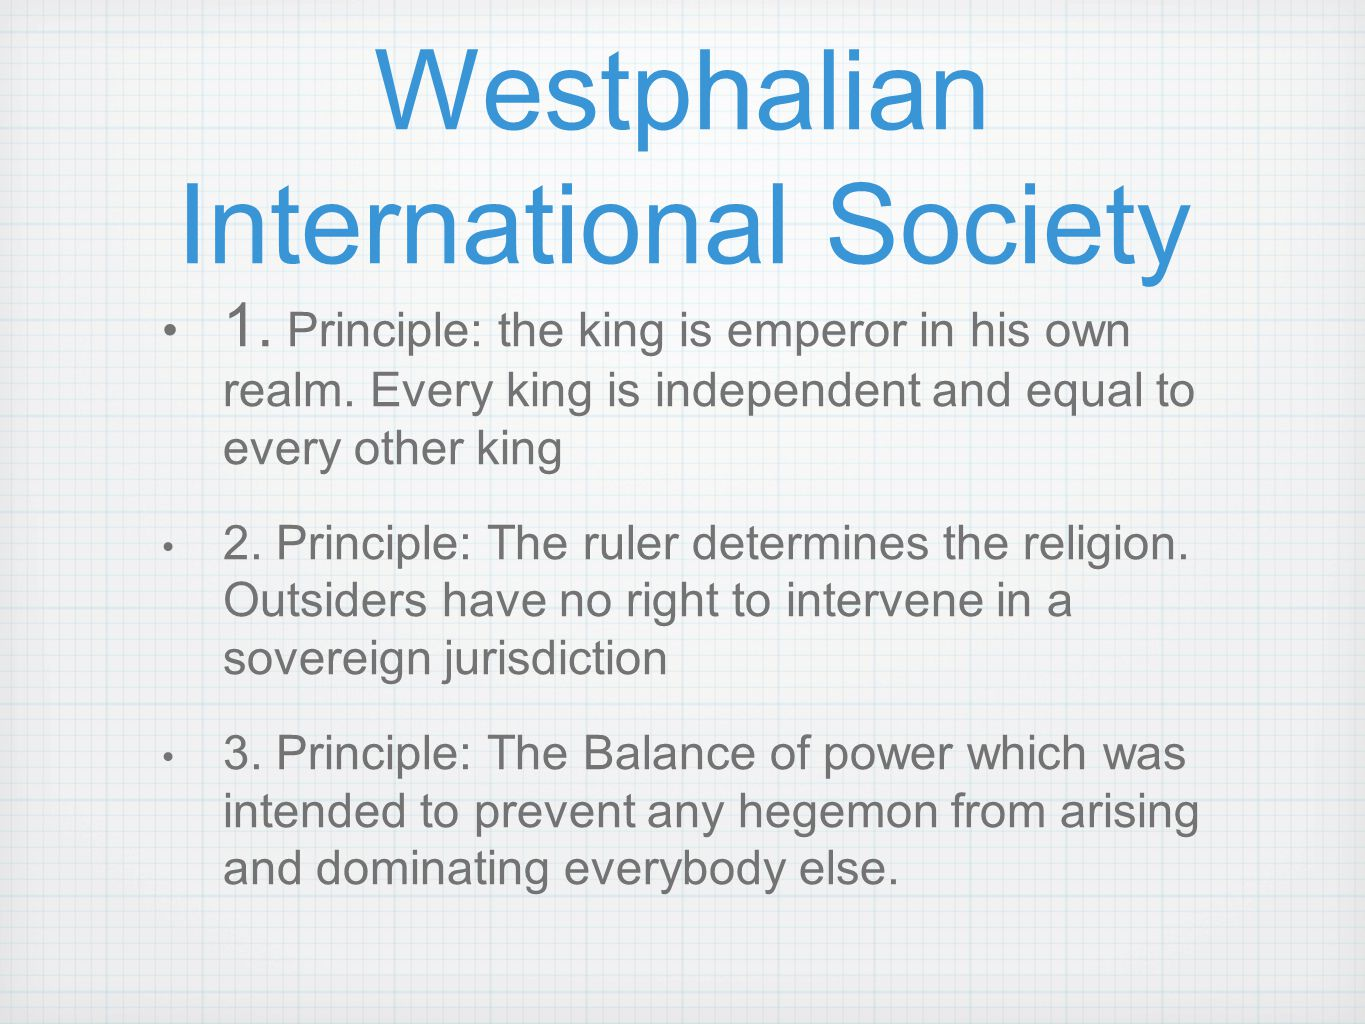 Westphalian International Society 1. Principle: the king is emperor in his own realm. Every king is independent and equal to every other king 2. Princ